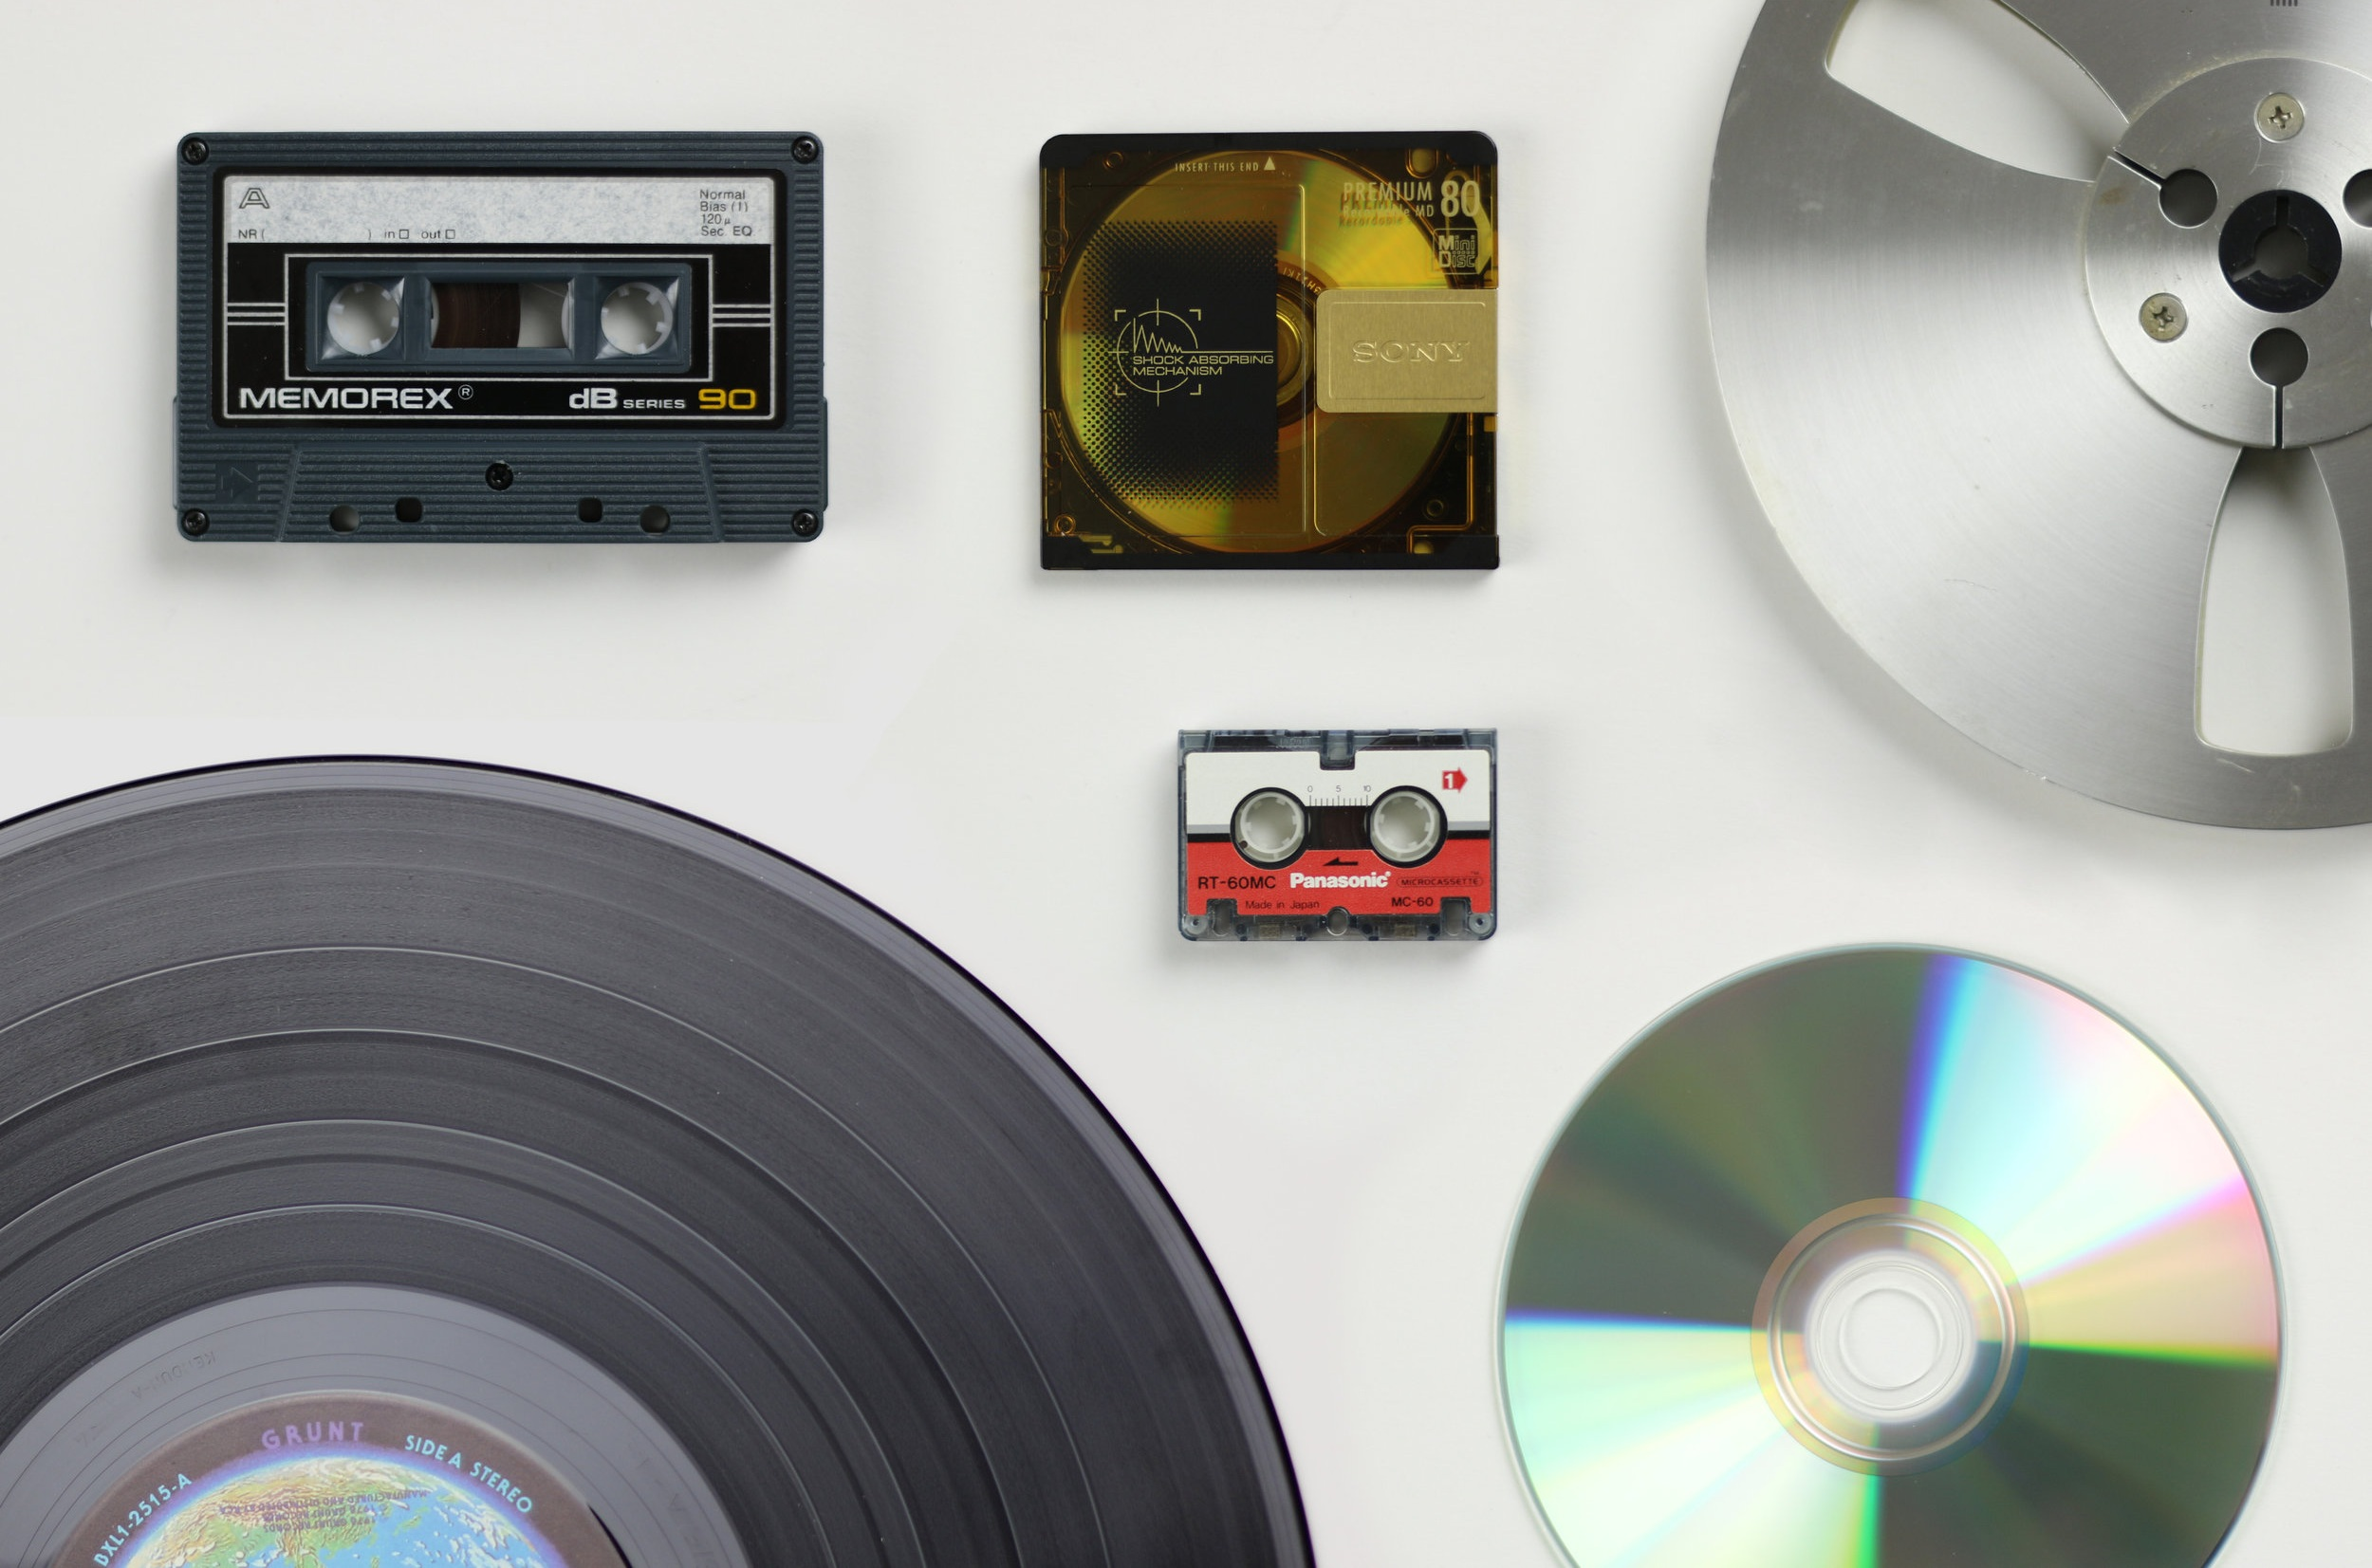 What Do We Transfer? - CASSETTE, MINI DISC, REEL TO REEL, MICRO-CASSETTE, RECORD, CD, 8 TRACK, AND MORE.You can bring or send in your audio to us to transfer. We can transfer your audio to CD or Flash Drive. If you would like to send us your audio you can follow our video tutorial using the link bellow or contact us directly.